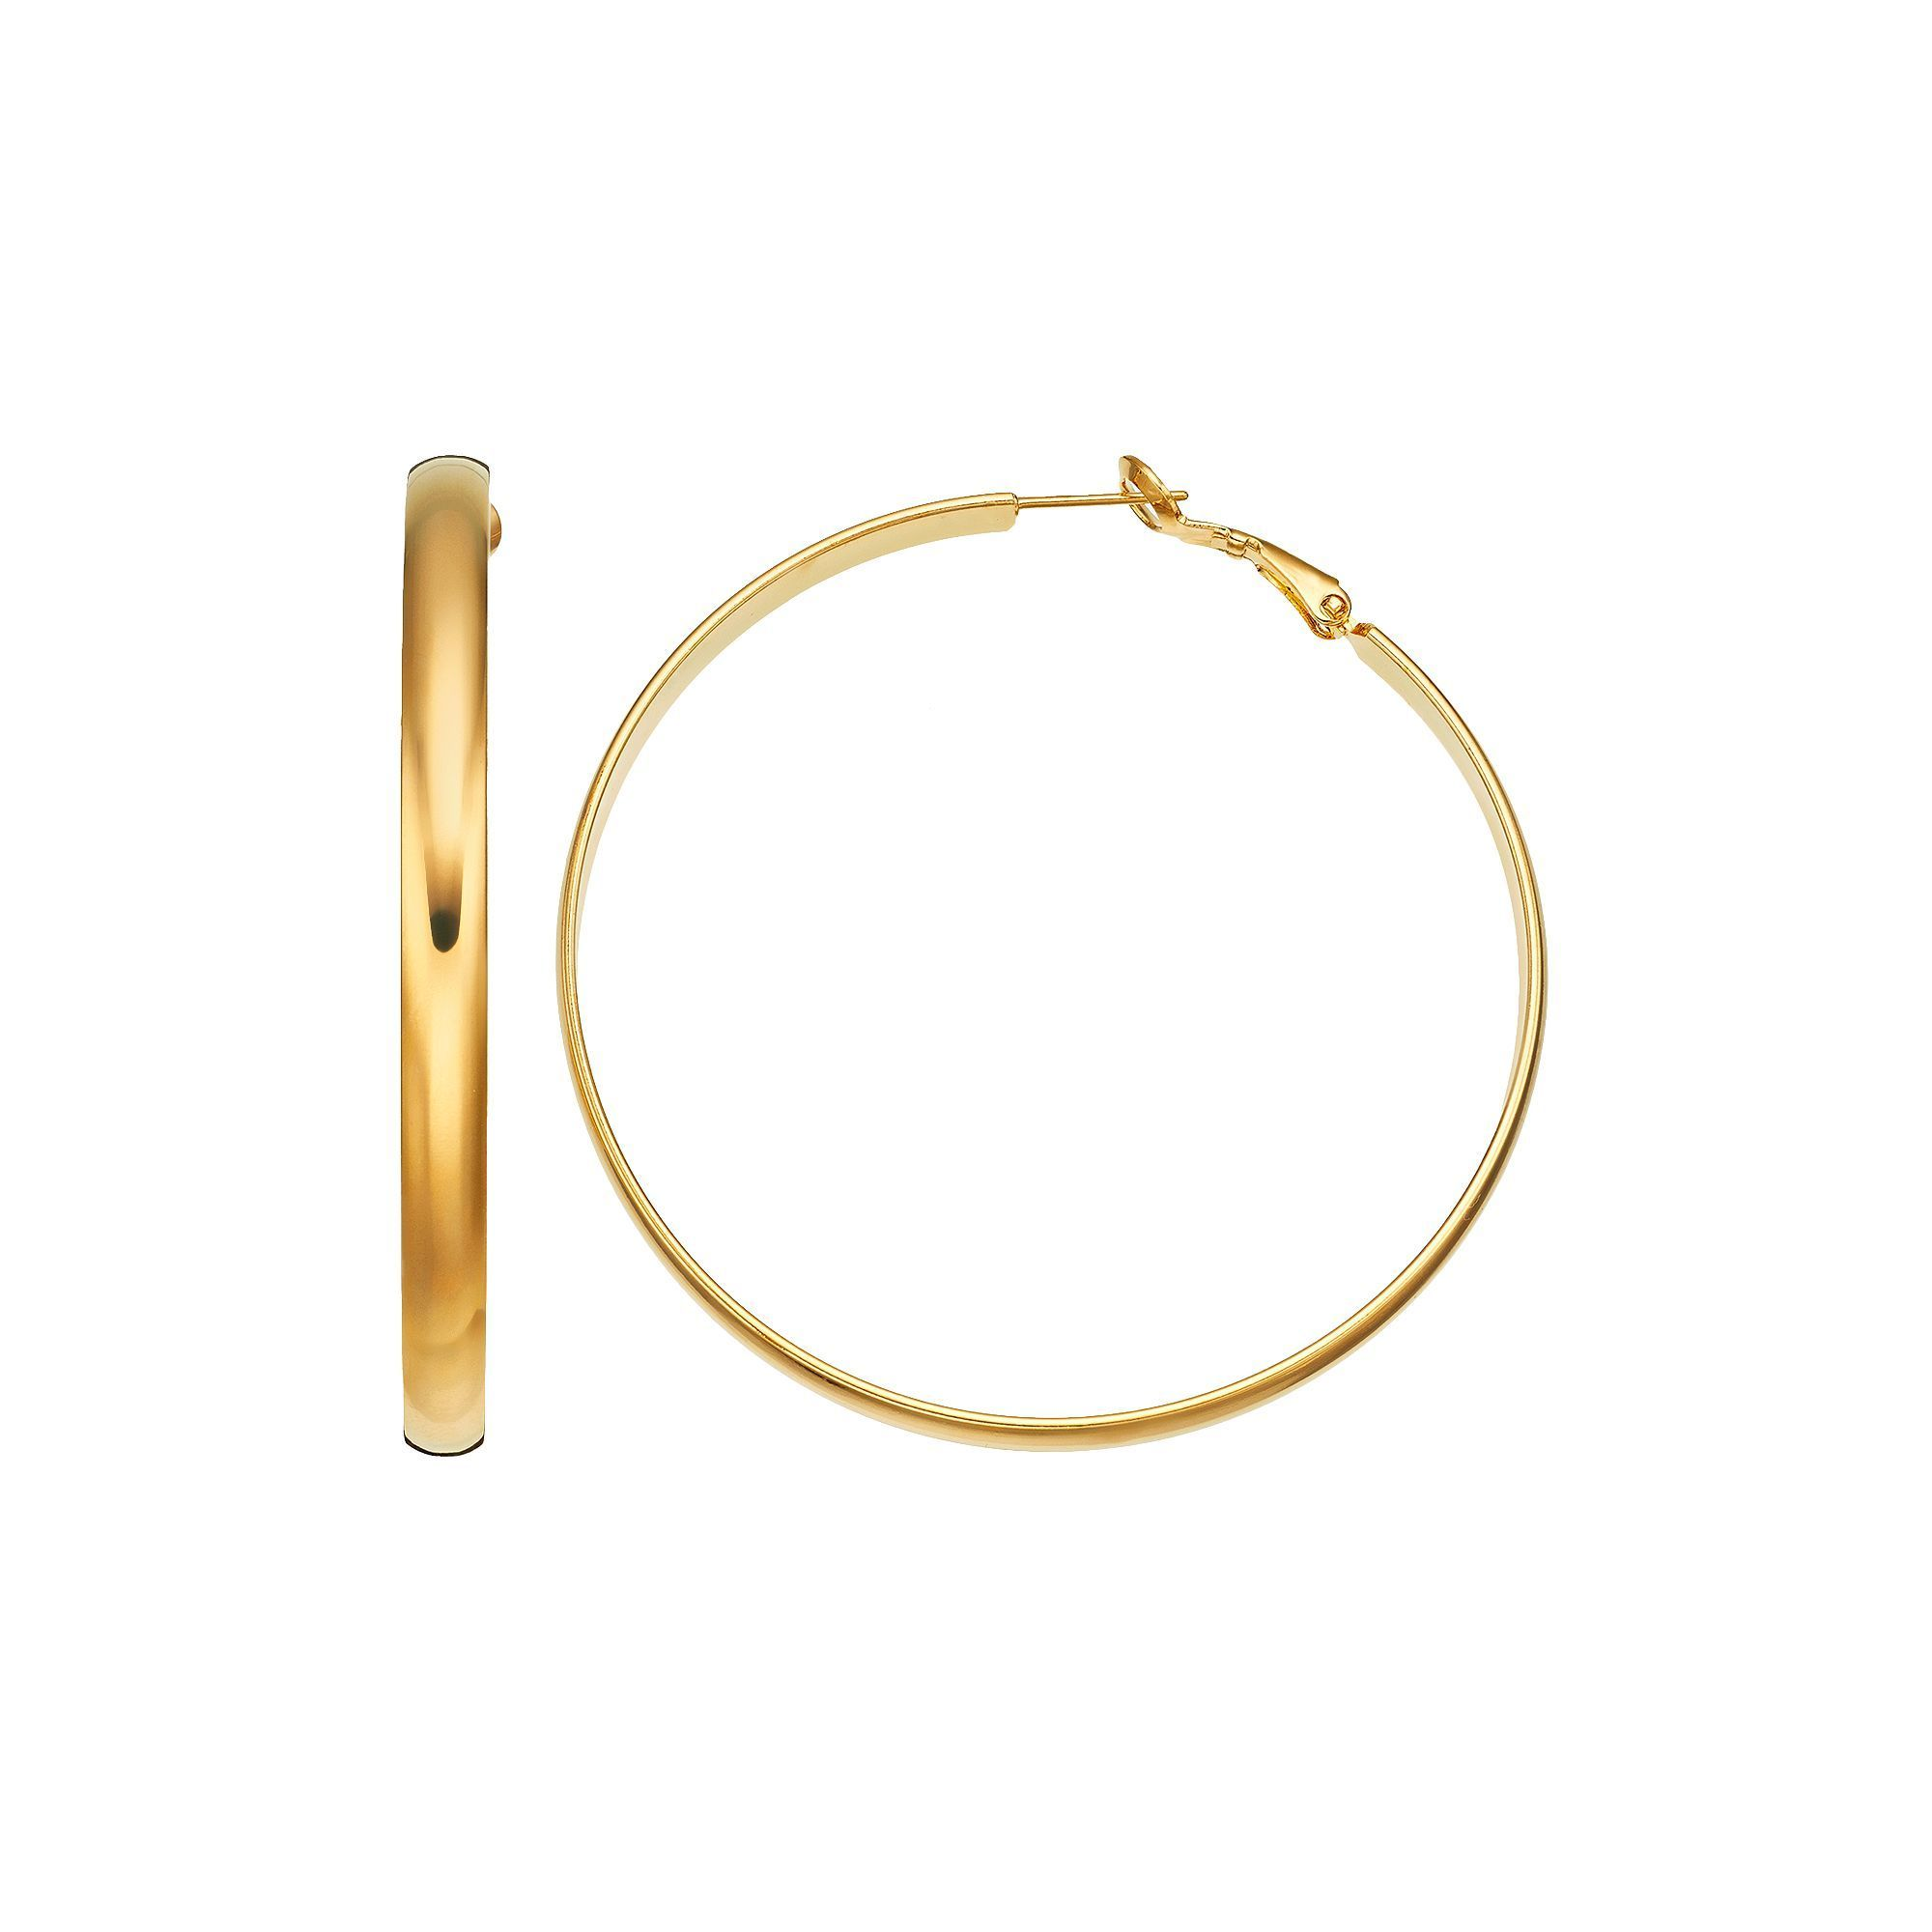 Kohl S 14k Gold Plated Hoop Earrings Products